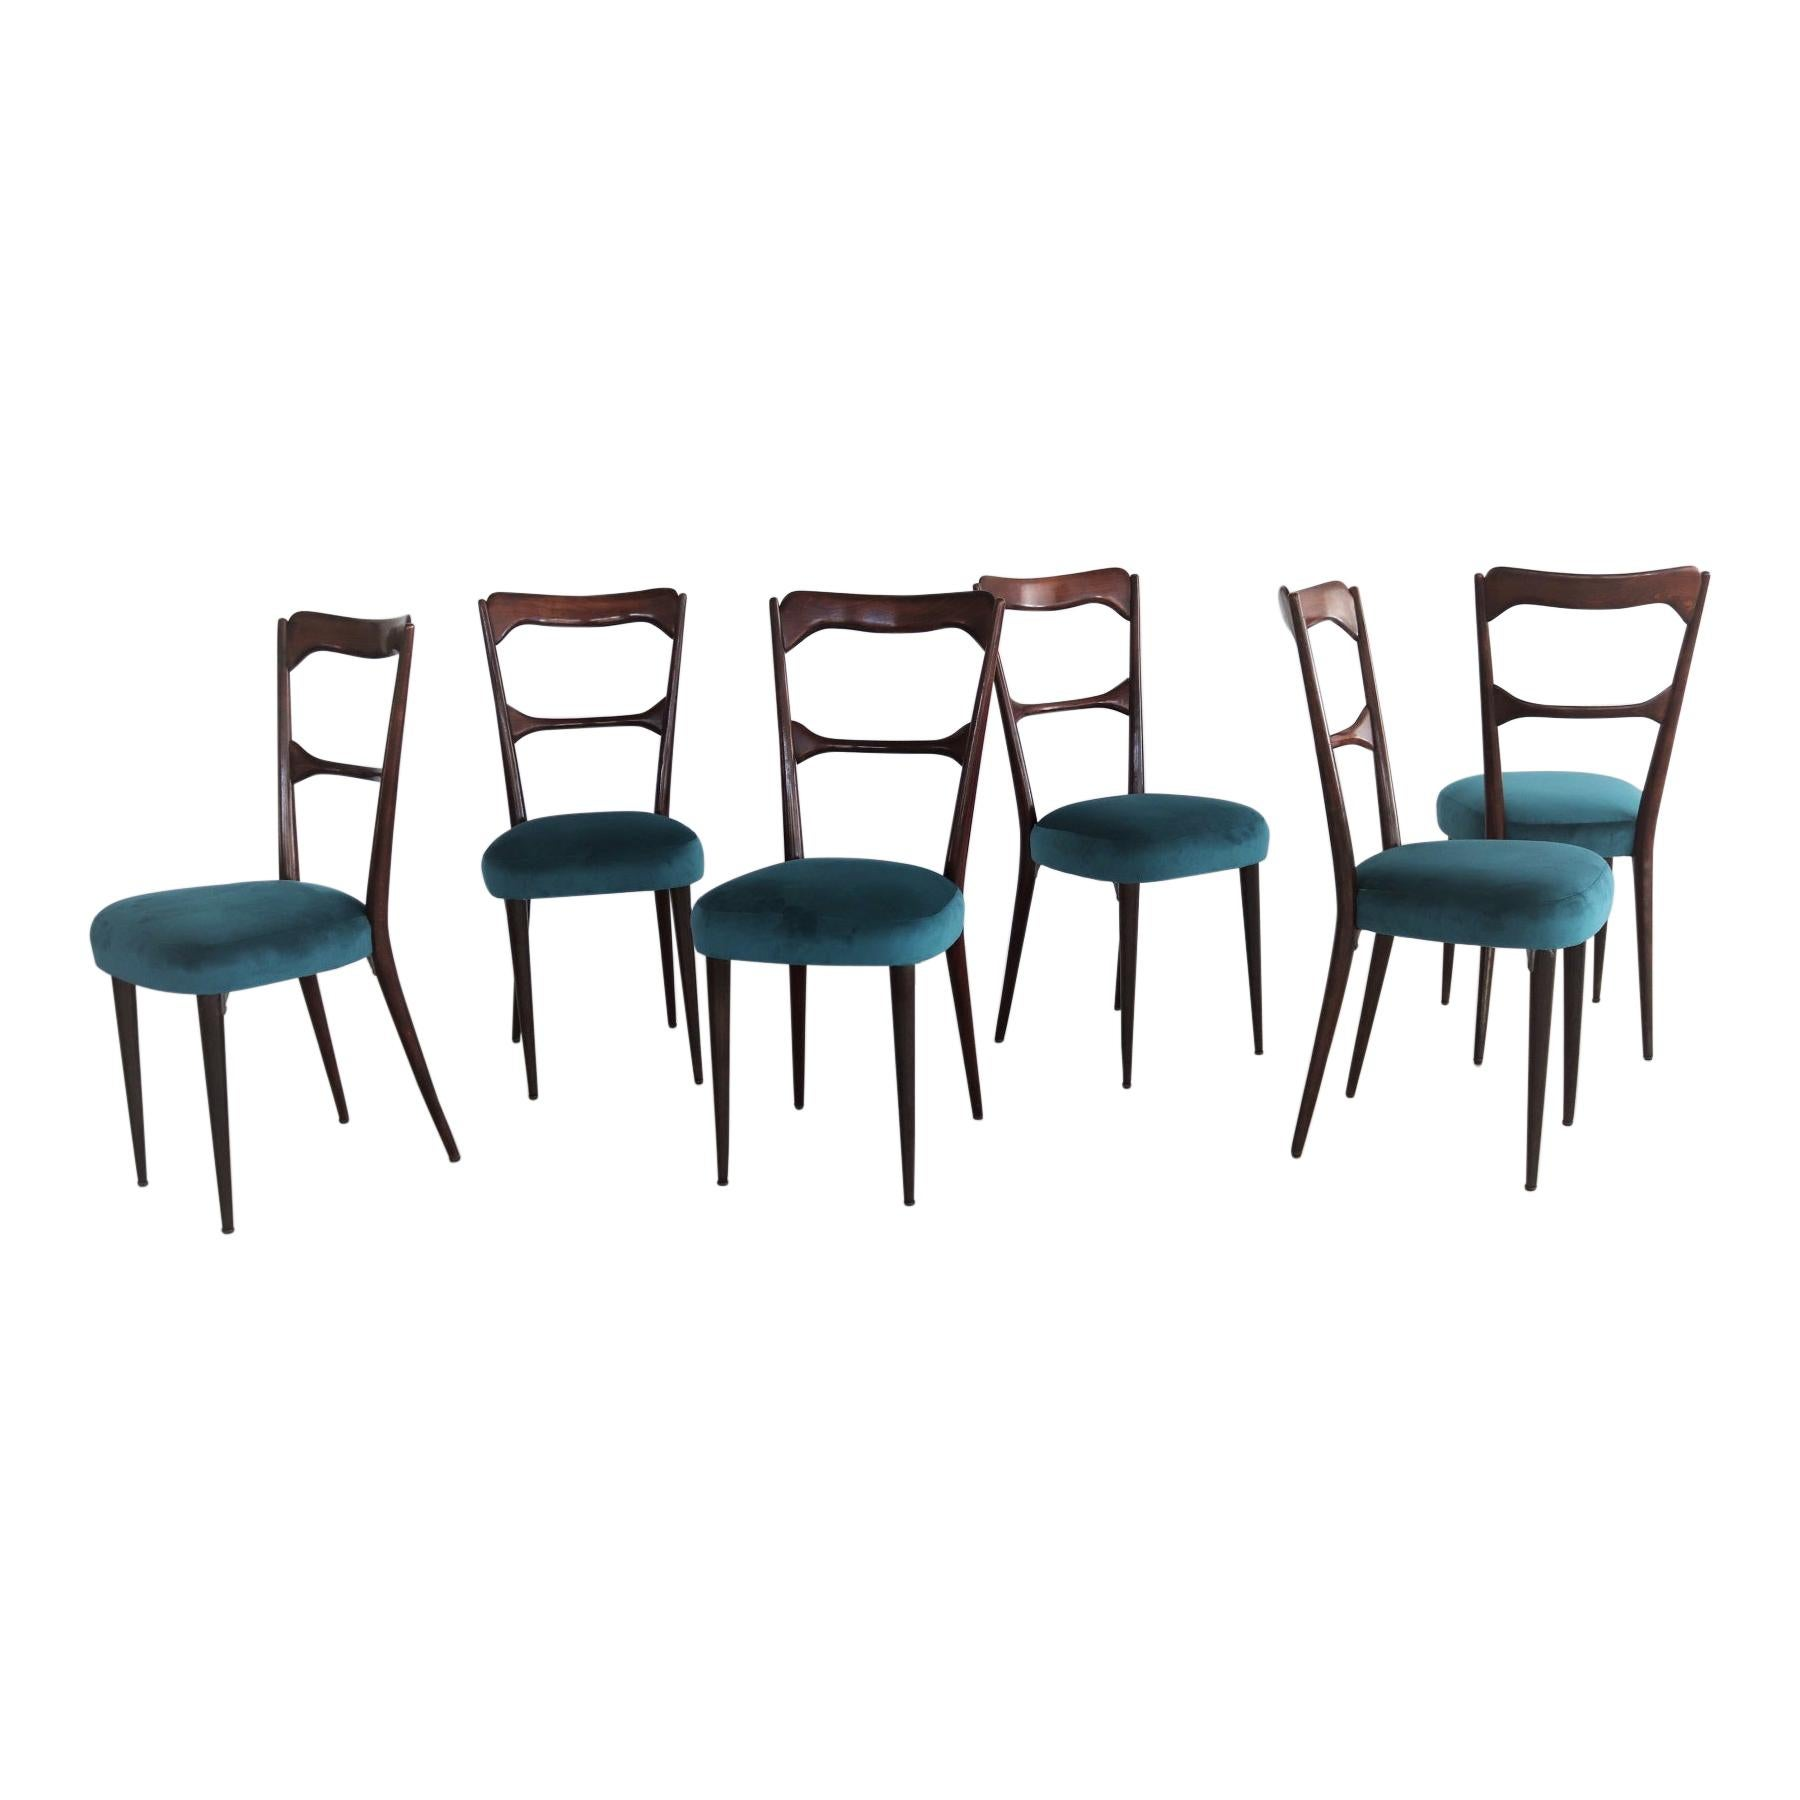 Italian Midcentury Dining Chairs in Paolo Buffa Style, 1950s